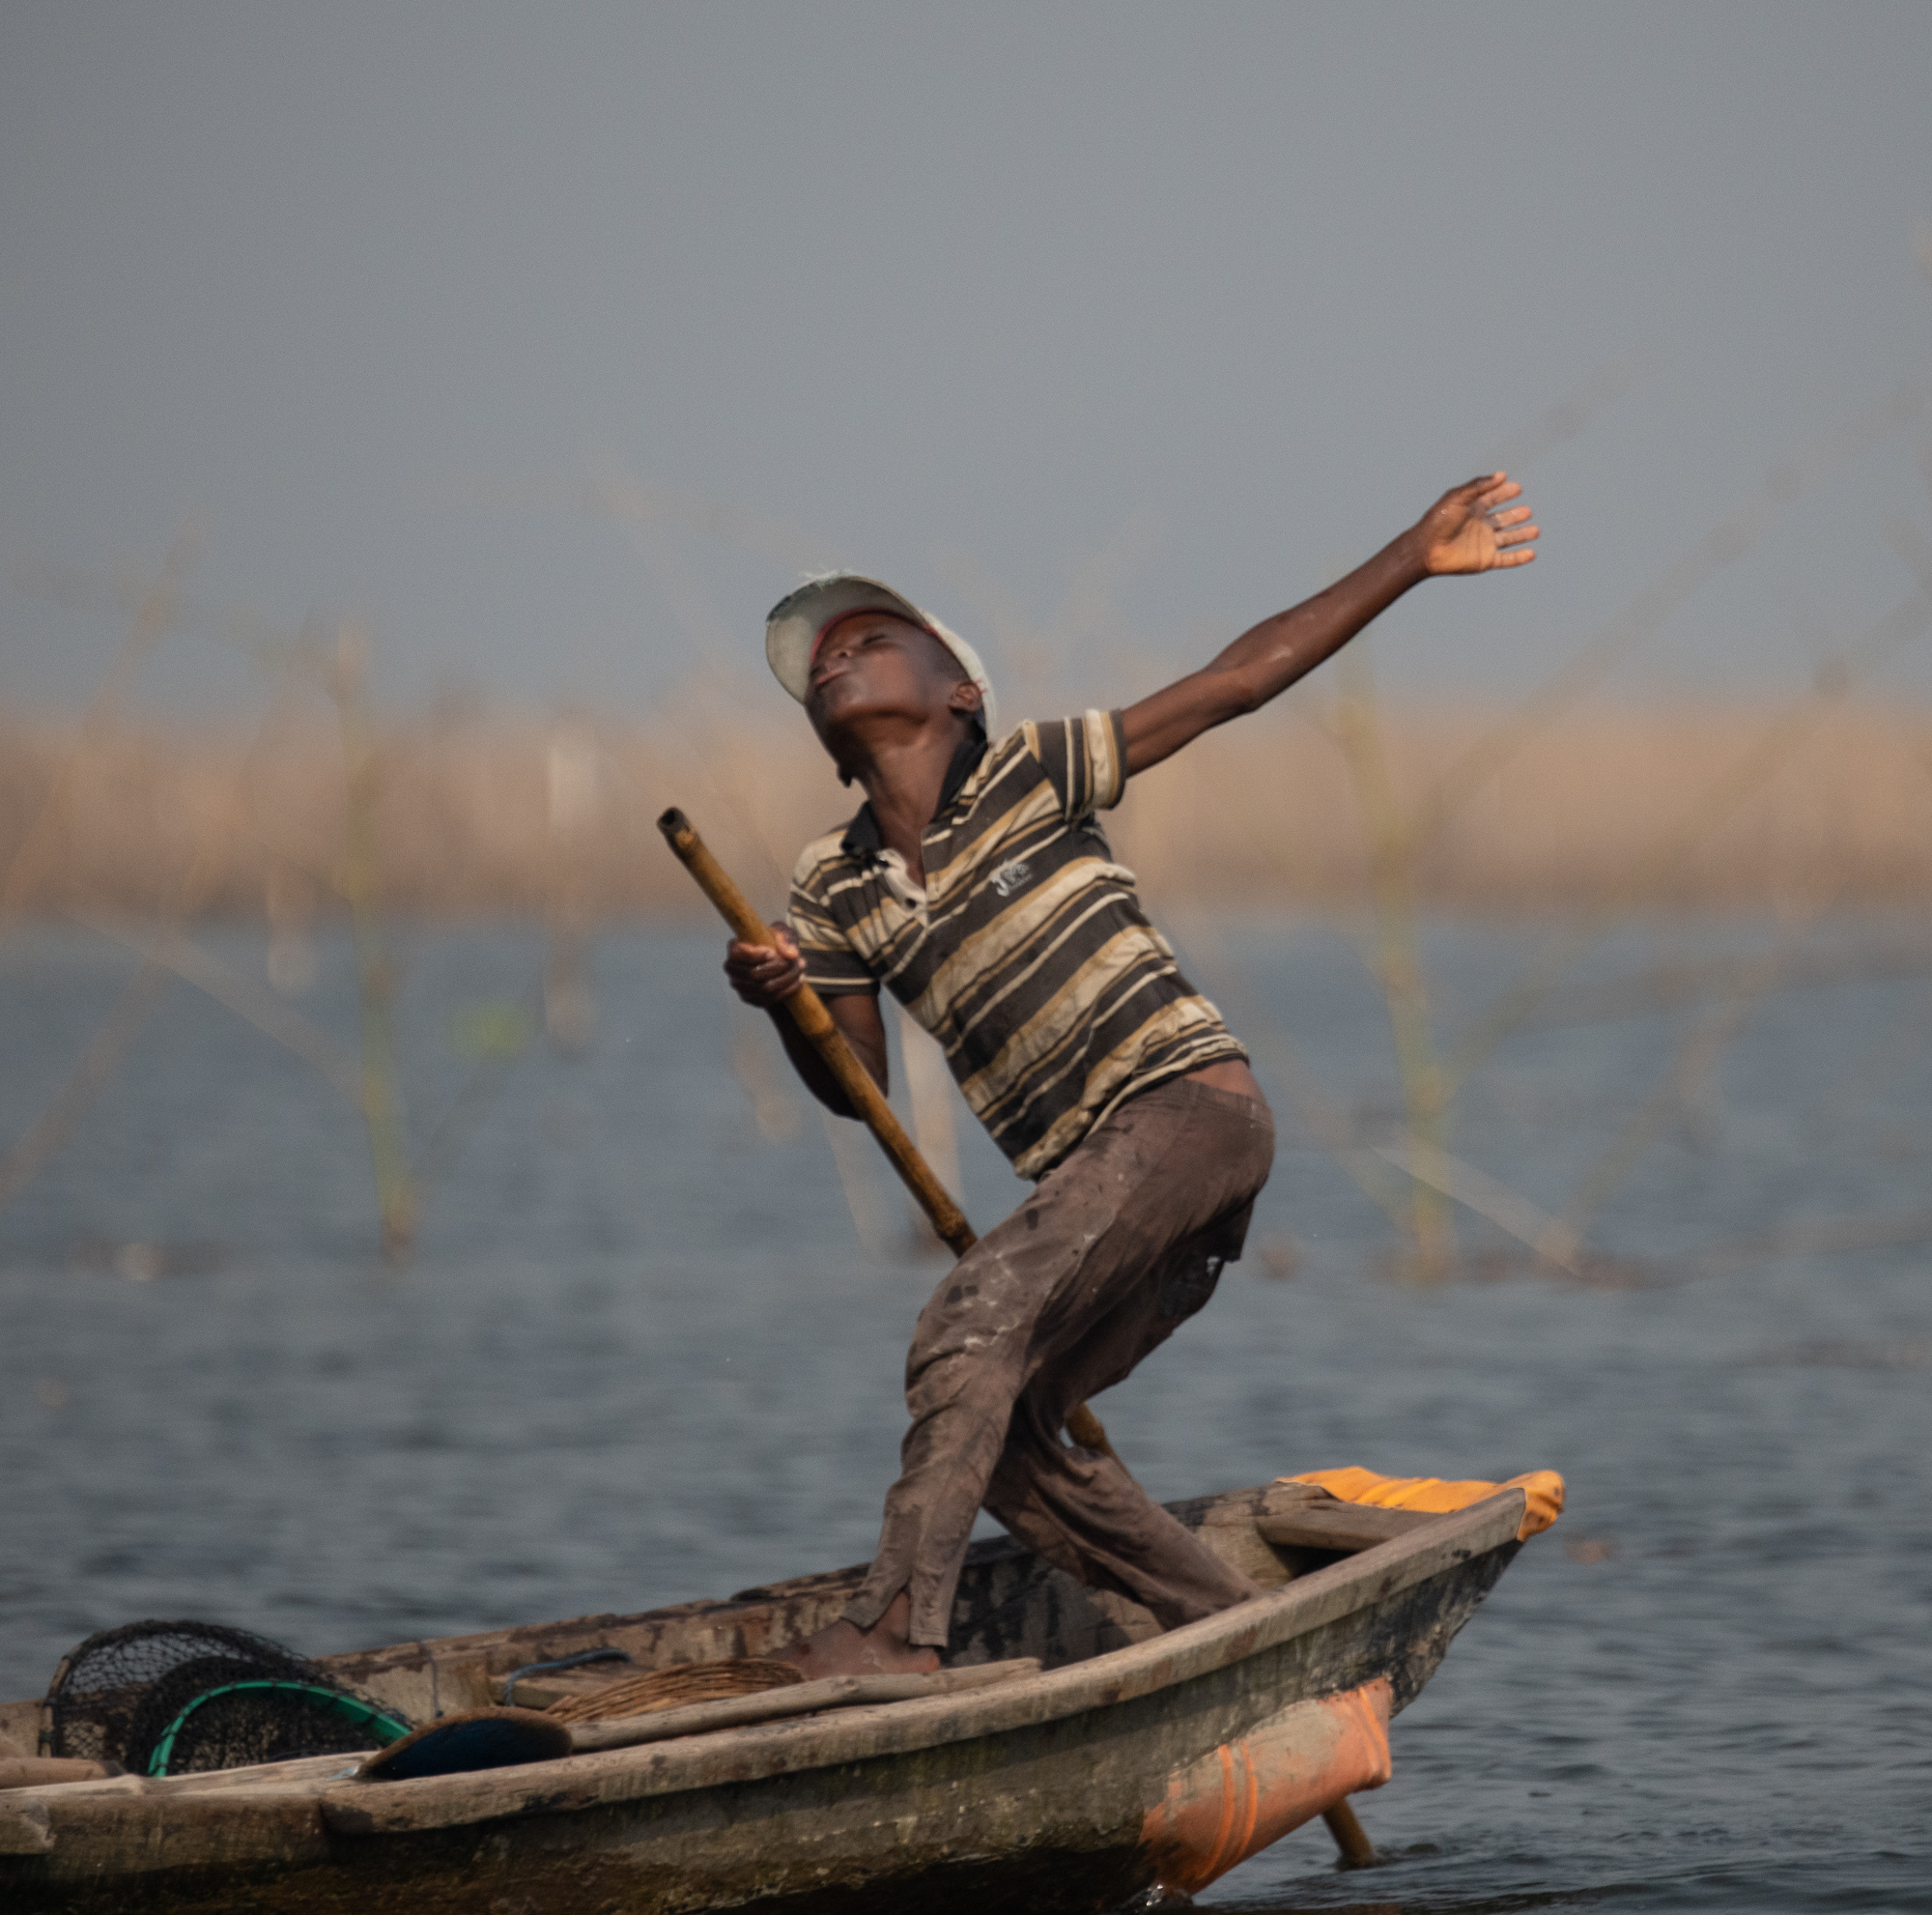 Exercising Fisherman, Ganvie, Benin